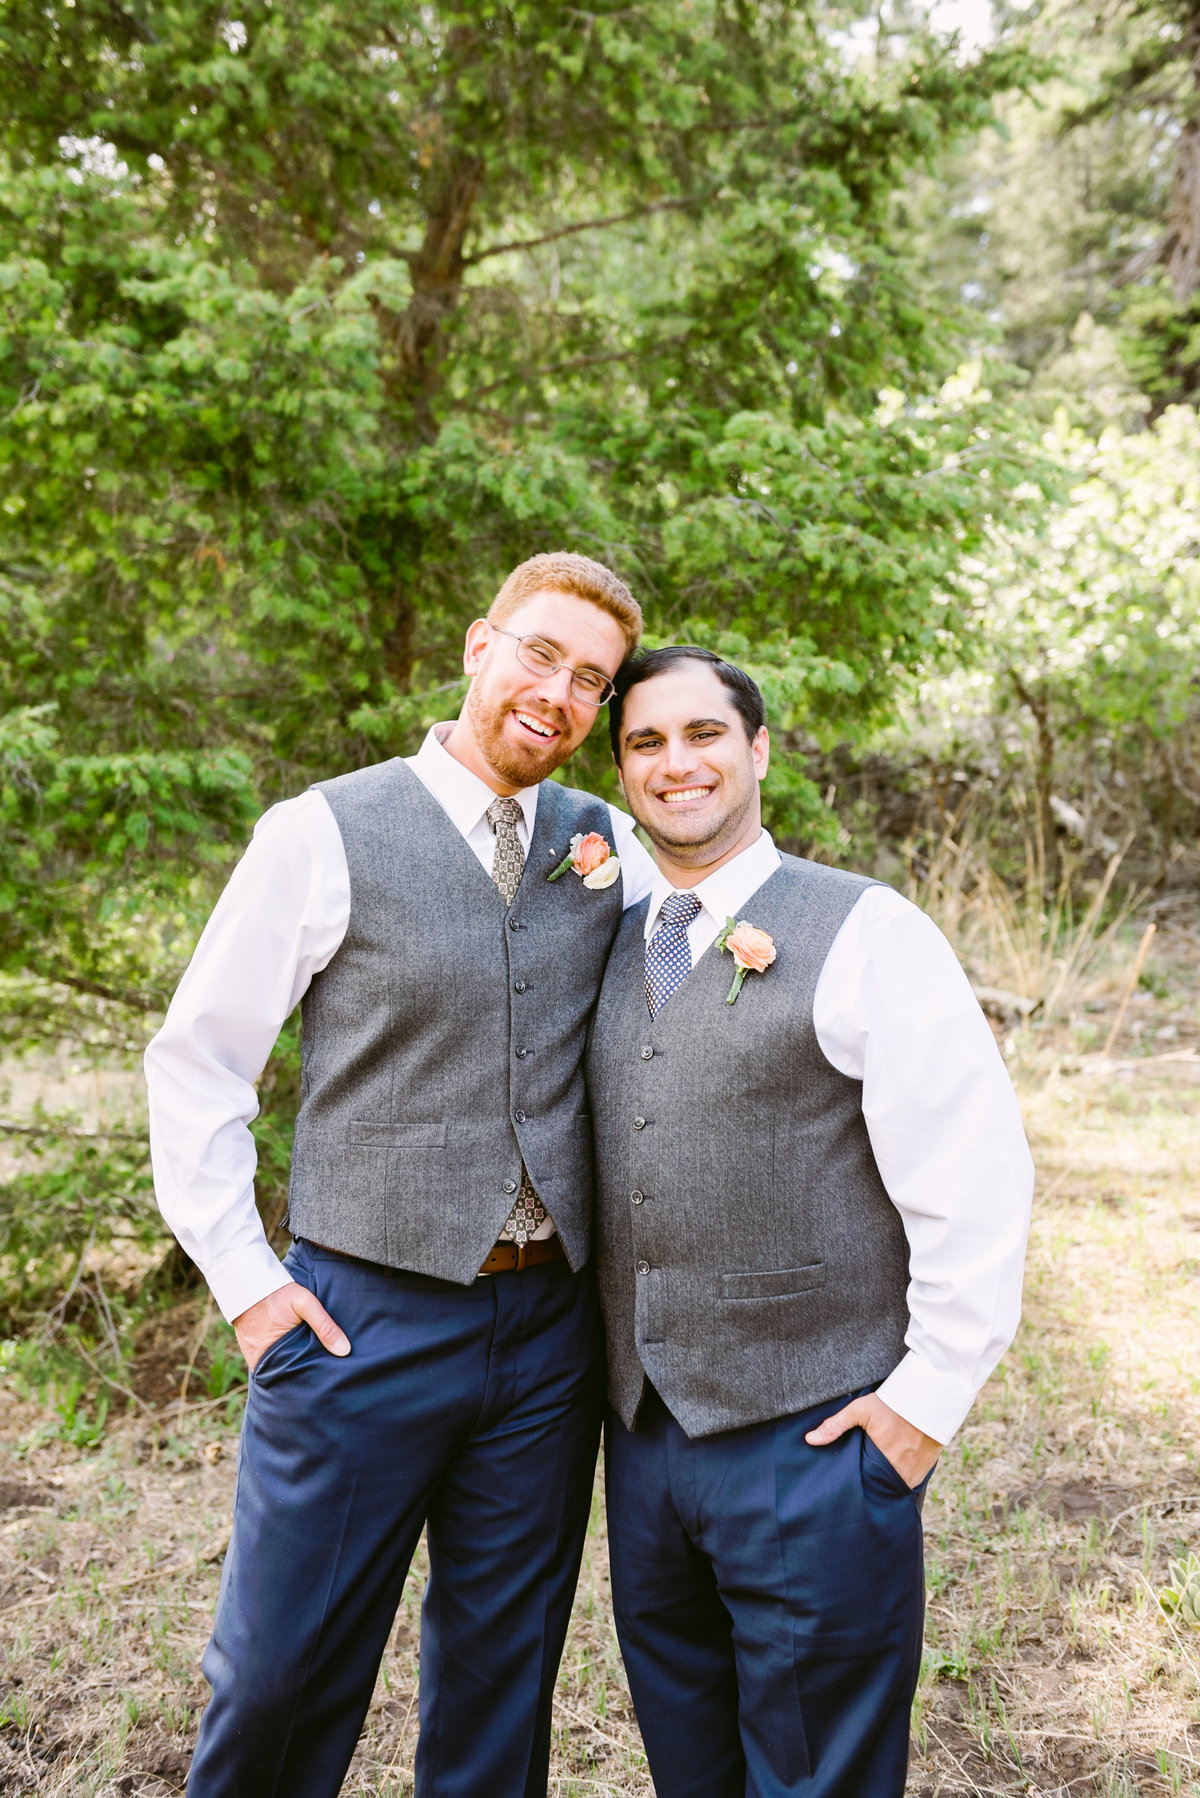 Albuquerque Outdoor Country Wedding Photographer_www.tylerbrooke.com_Kate Kauffman-14